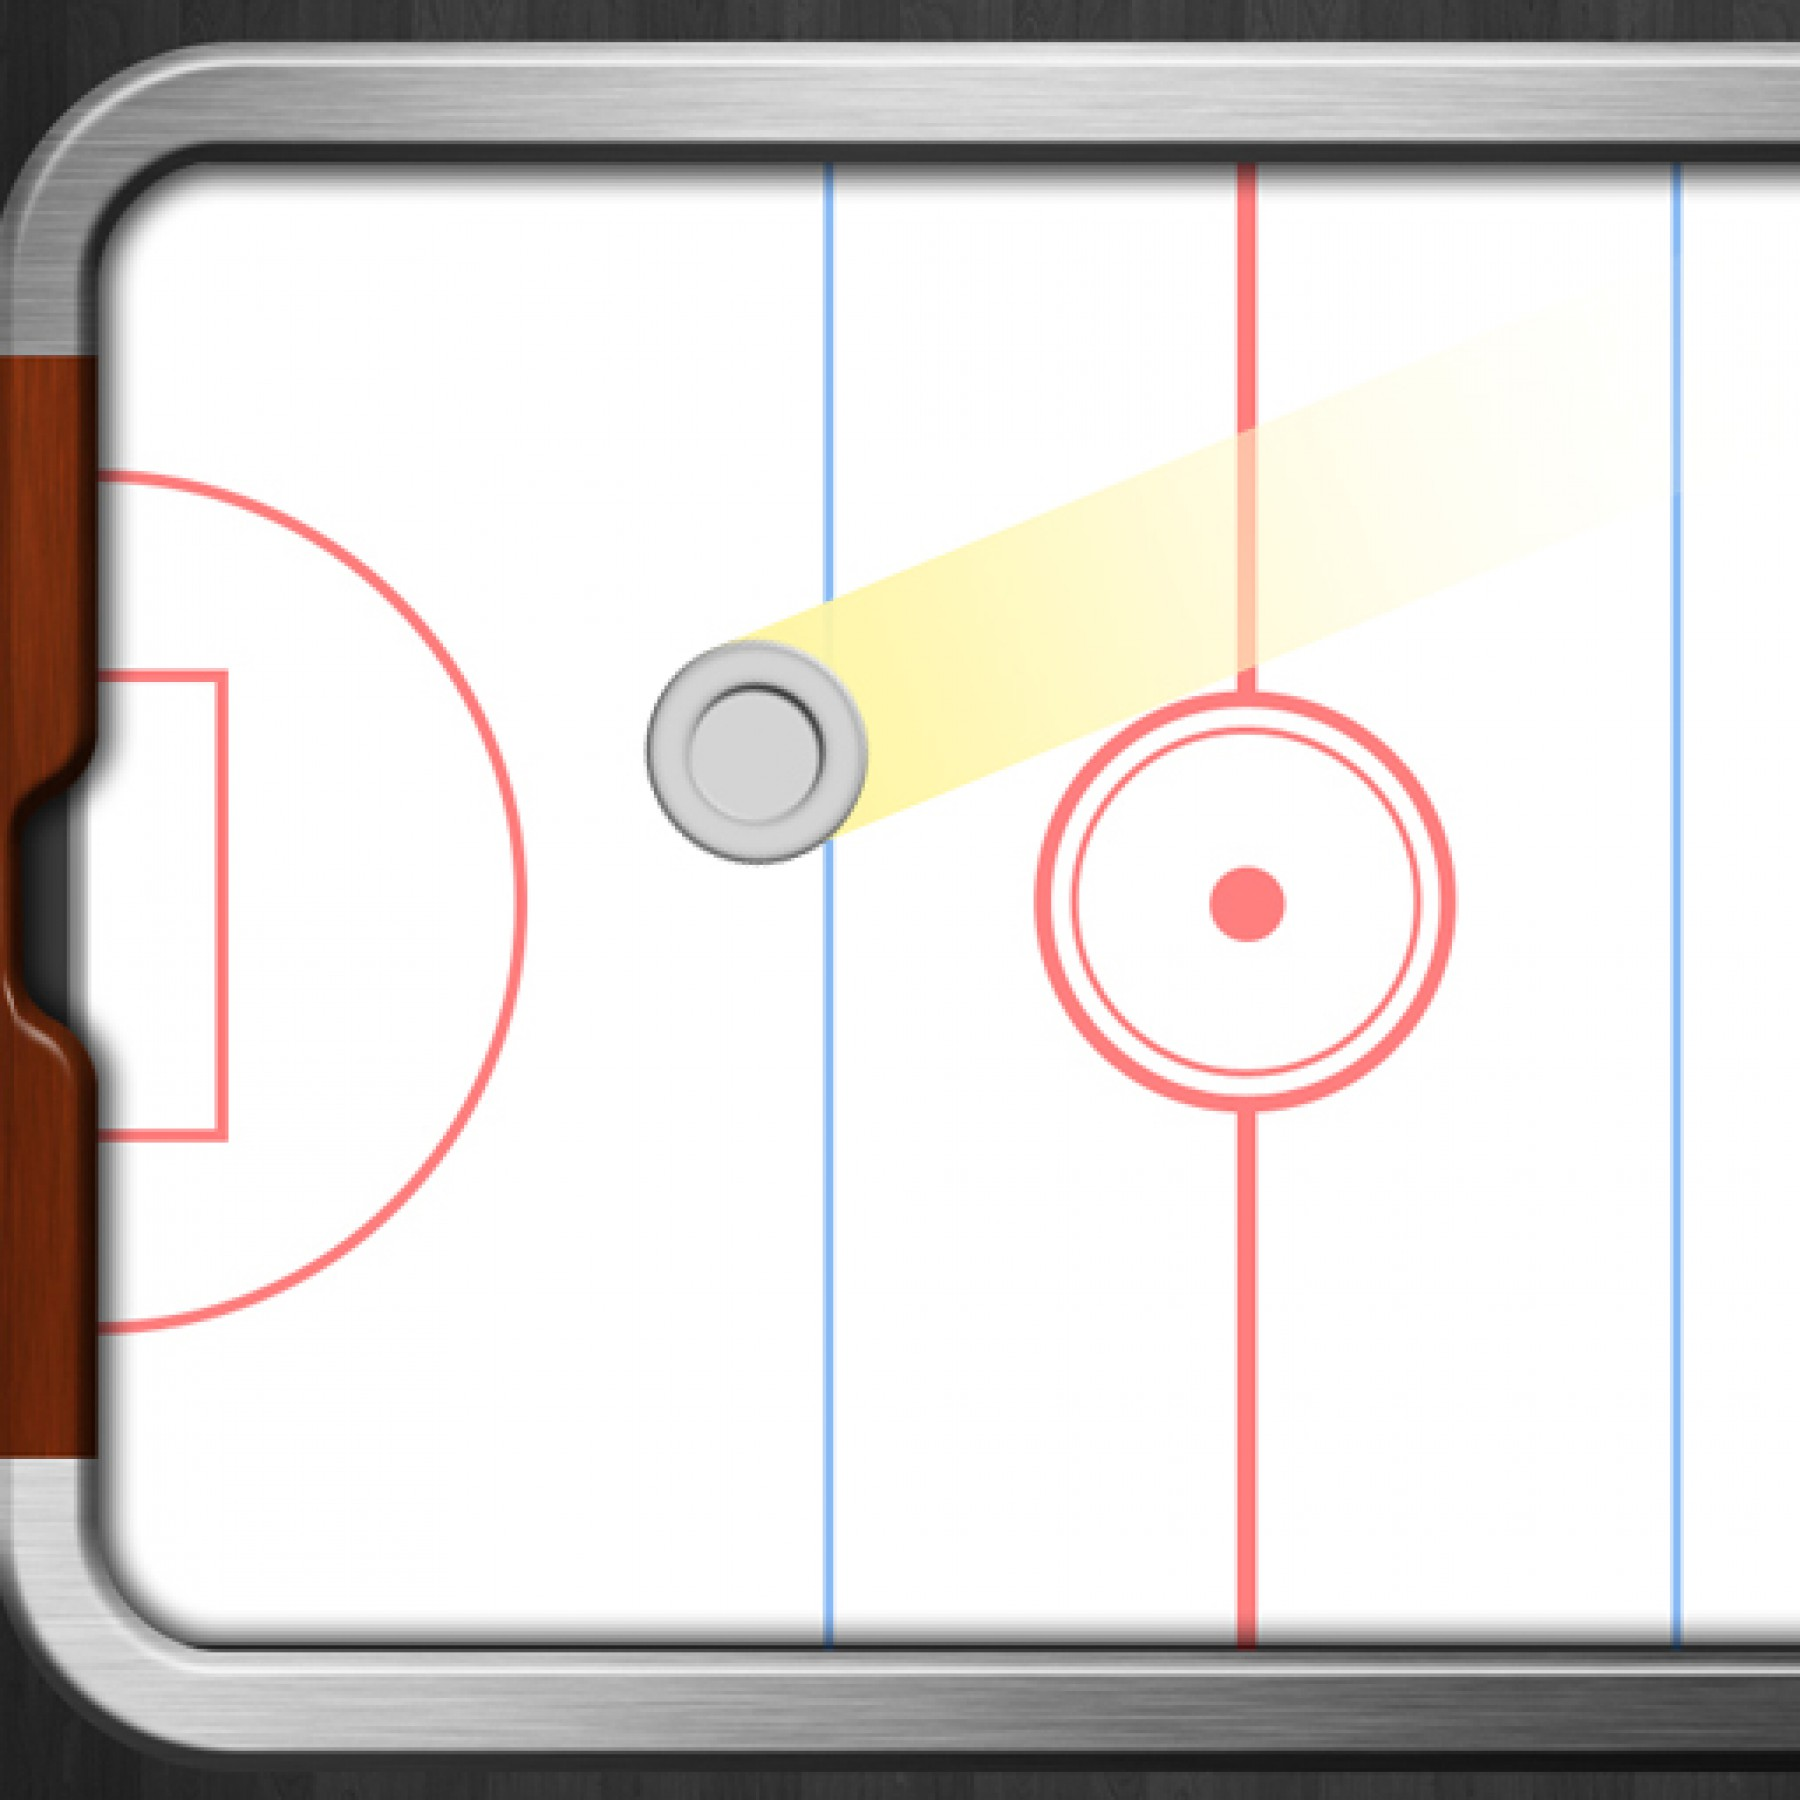 air-hockey-games-playtime-active-entertainment-kids-sports-adults-main-location1